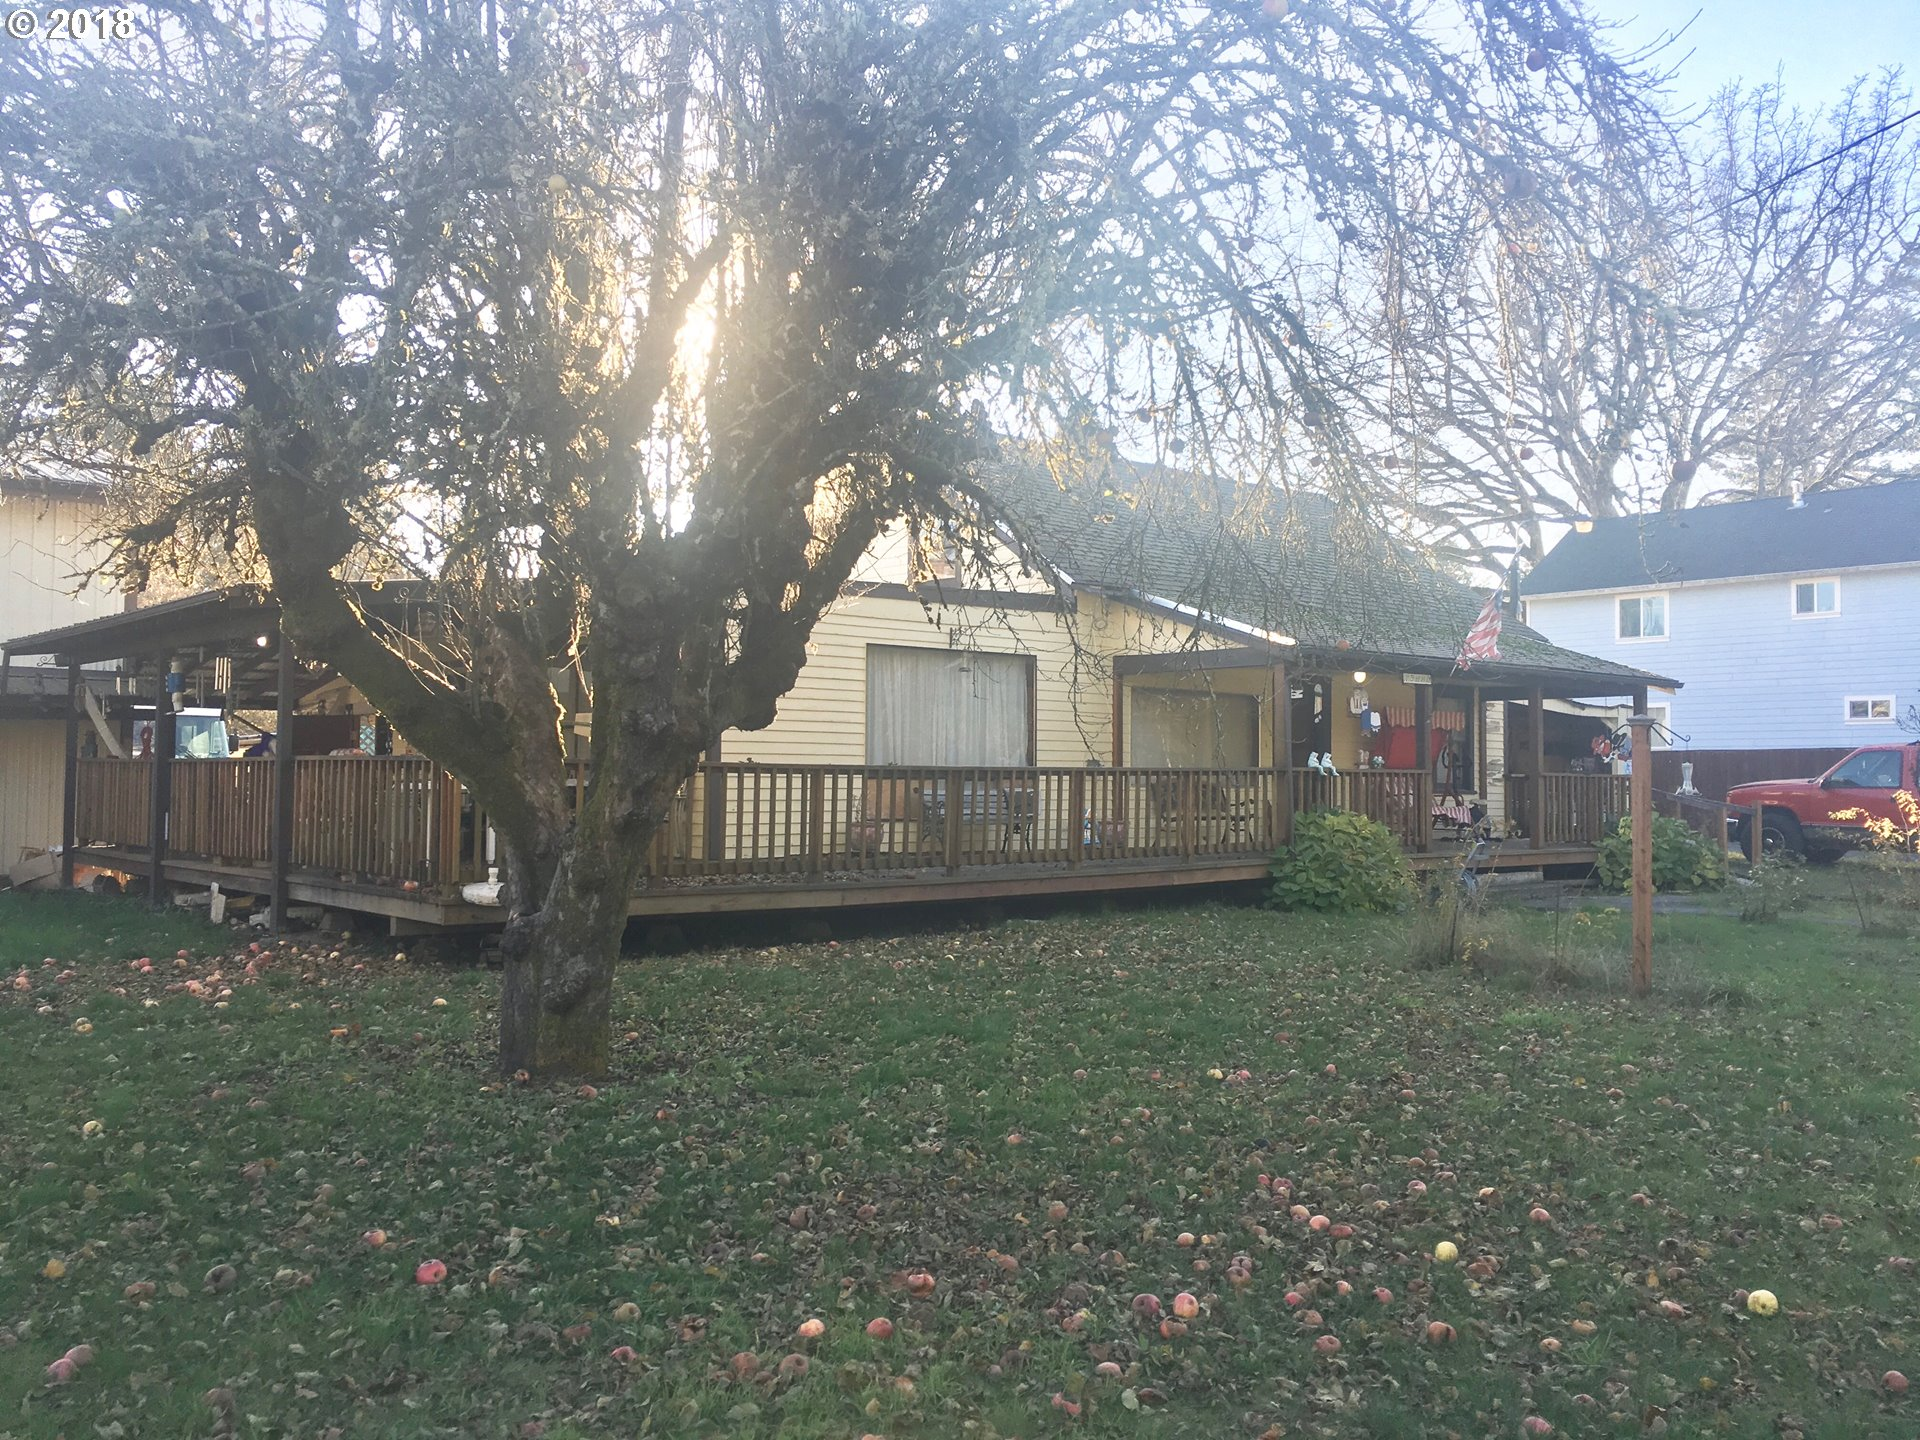 Hard-to-Find 2 Acre Property in Prime Central Beaverton Location! House could use TLC - Newer Furnace. RV Garage w/Water + Power. Desirable New Mountainside High School. Development Potential for Multiple Lots - Buyer to do their own due diligence. Blocks to Several Parks. Easy Access to Highway 217. So Much Potential! See ML# 18302321 for Lots/Land Listing!